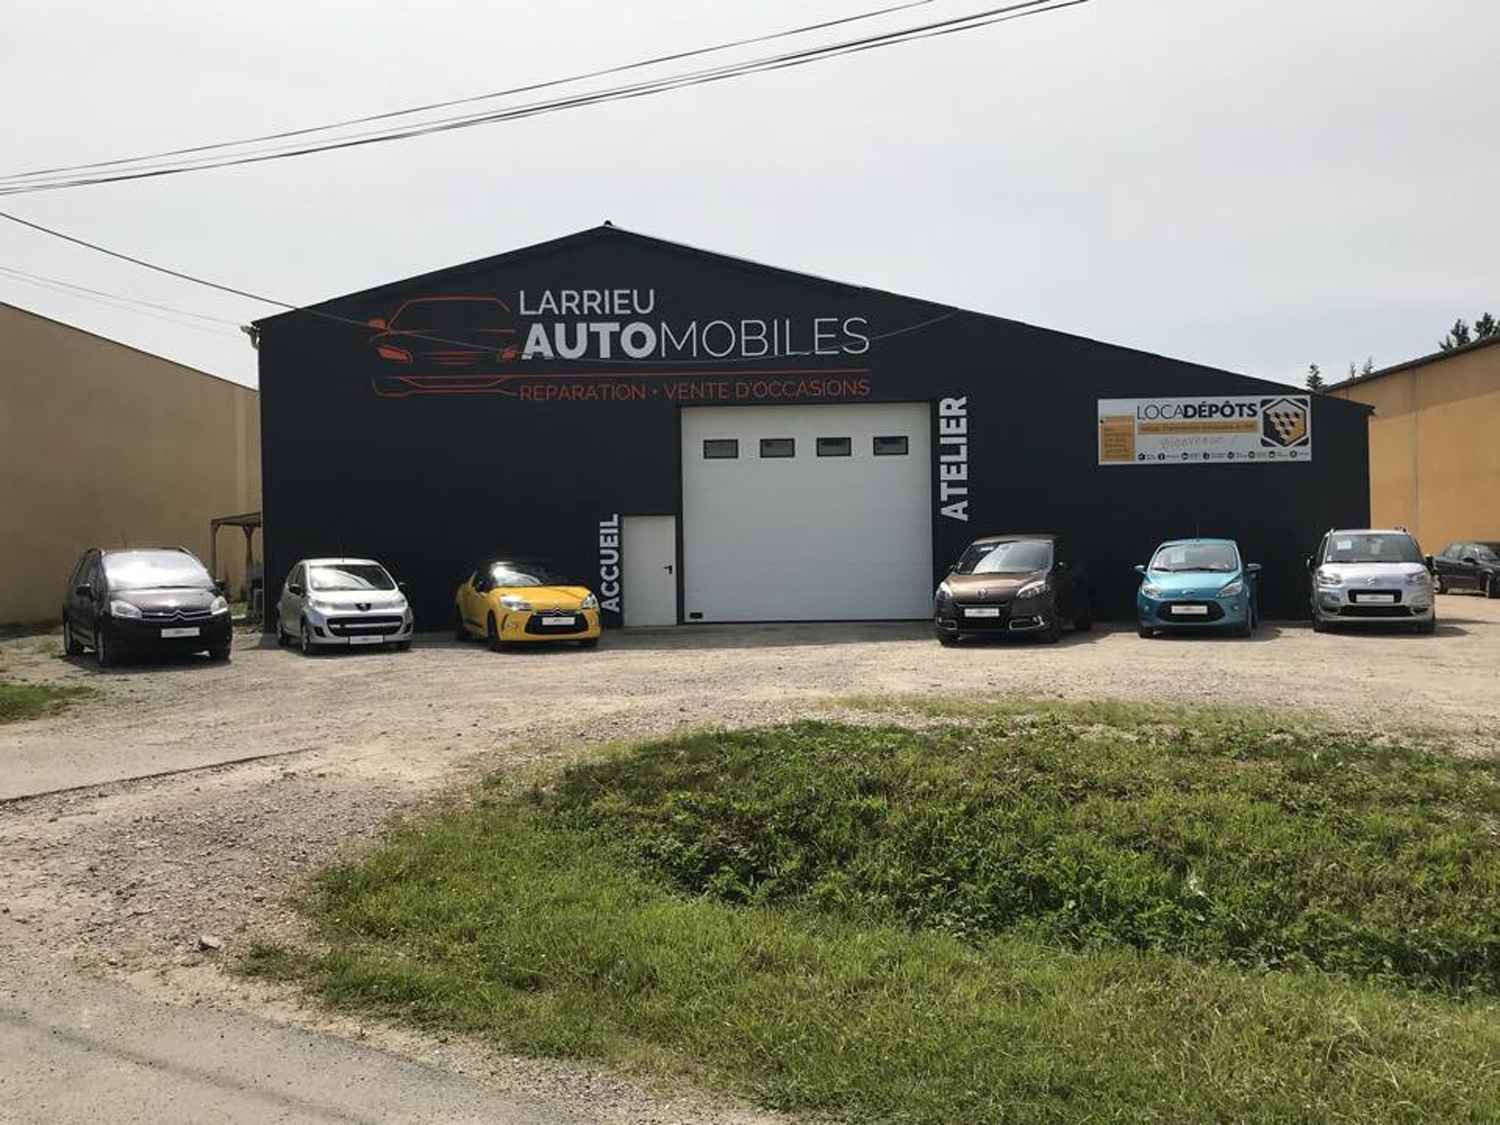 Garage Larrieu automobiles